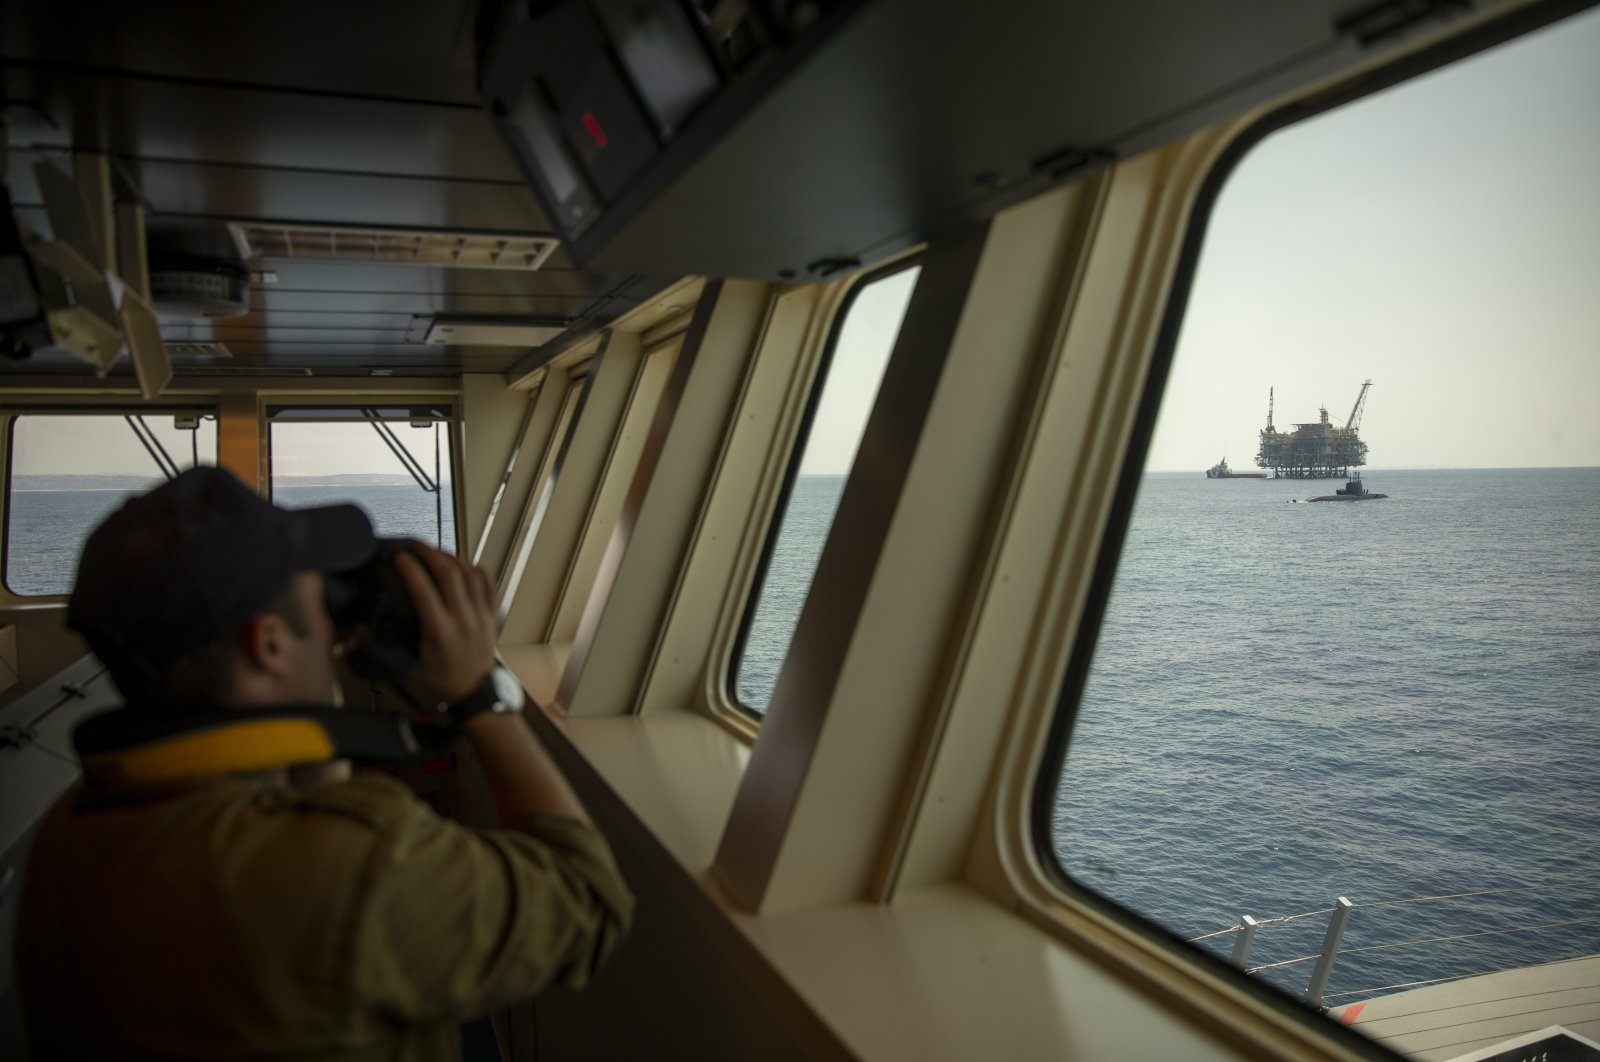 An Israeli Navy sailor looks at Israel's offshore Leviathan gas field from on board the Israeli Navy Ship Atzmaut as a submarine patrols in the Mediterranean Sea, Sept. 1, 2021. (AP Photo)